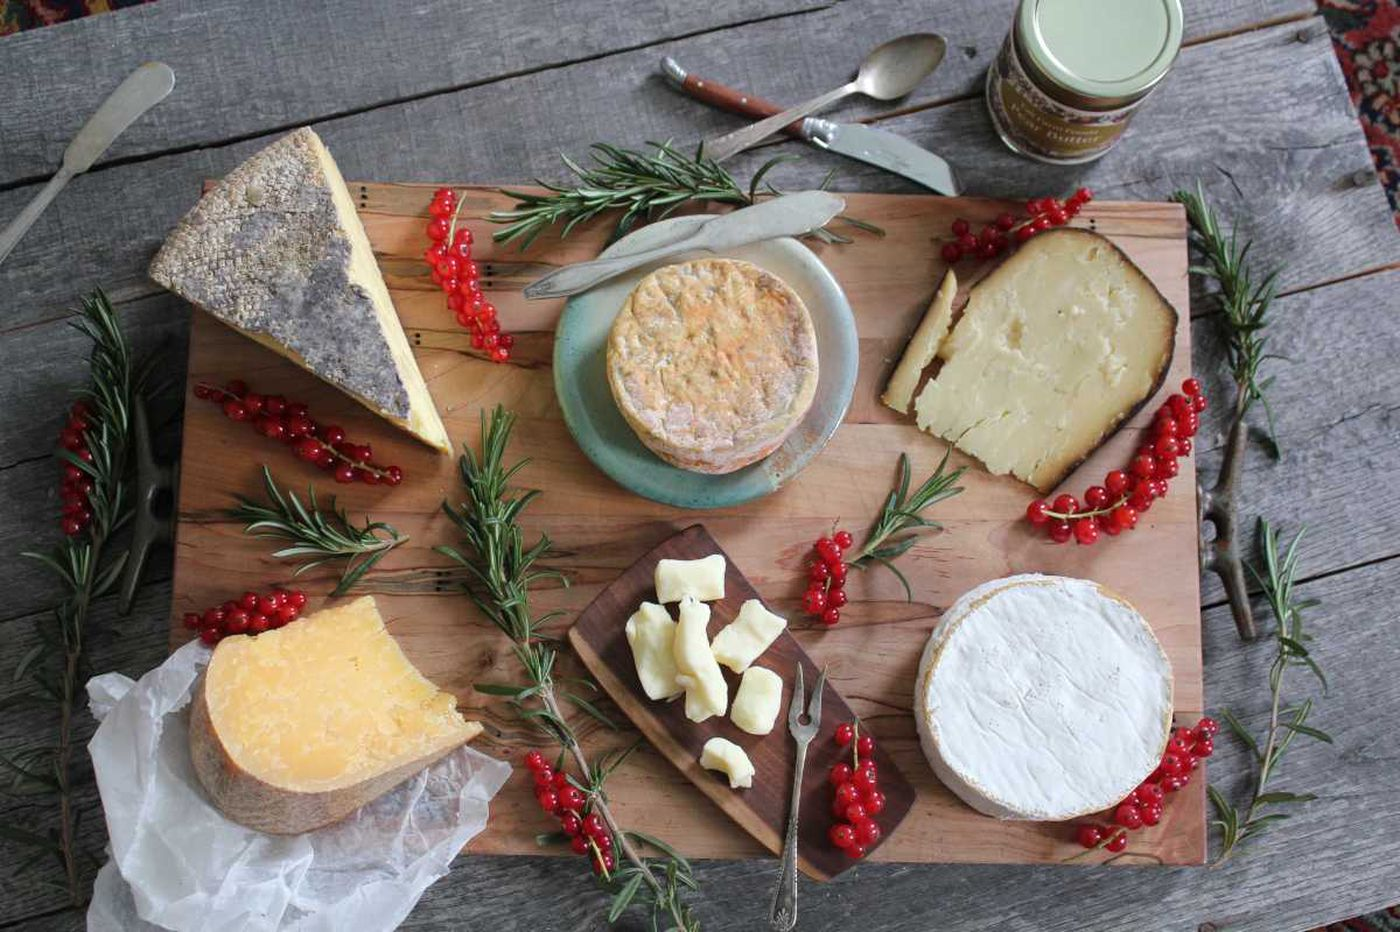 Discover these great local cheeses - or, how to bring more hunks into your life